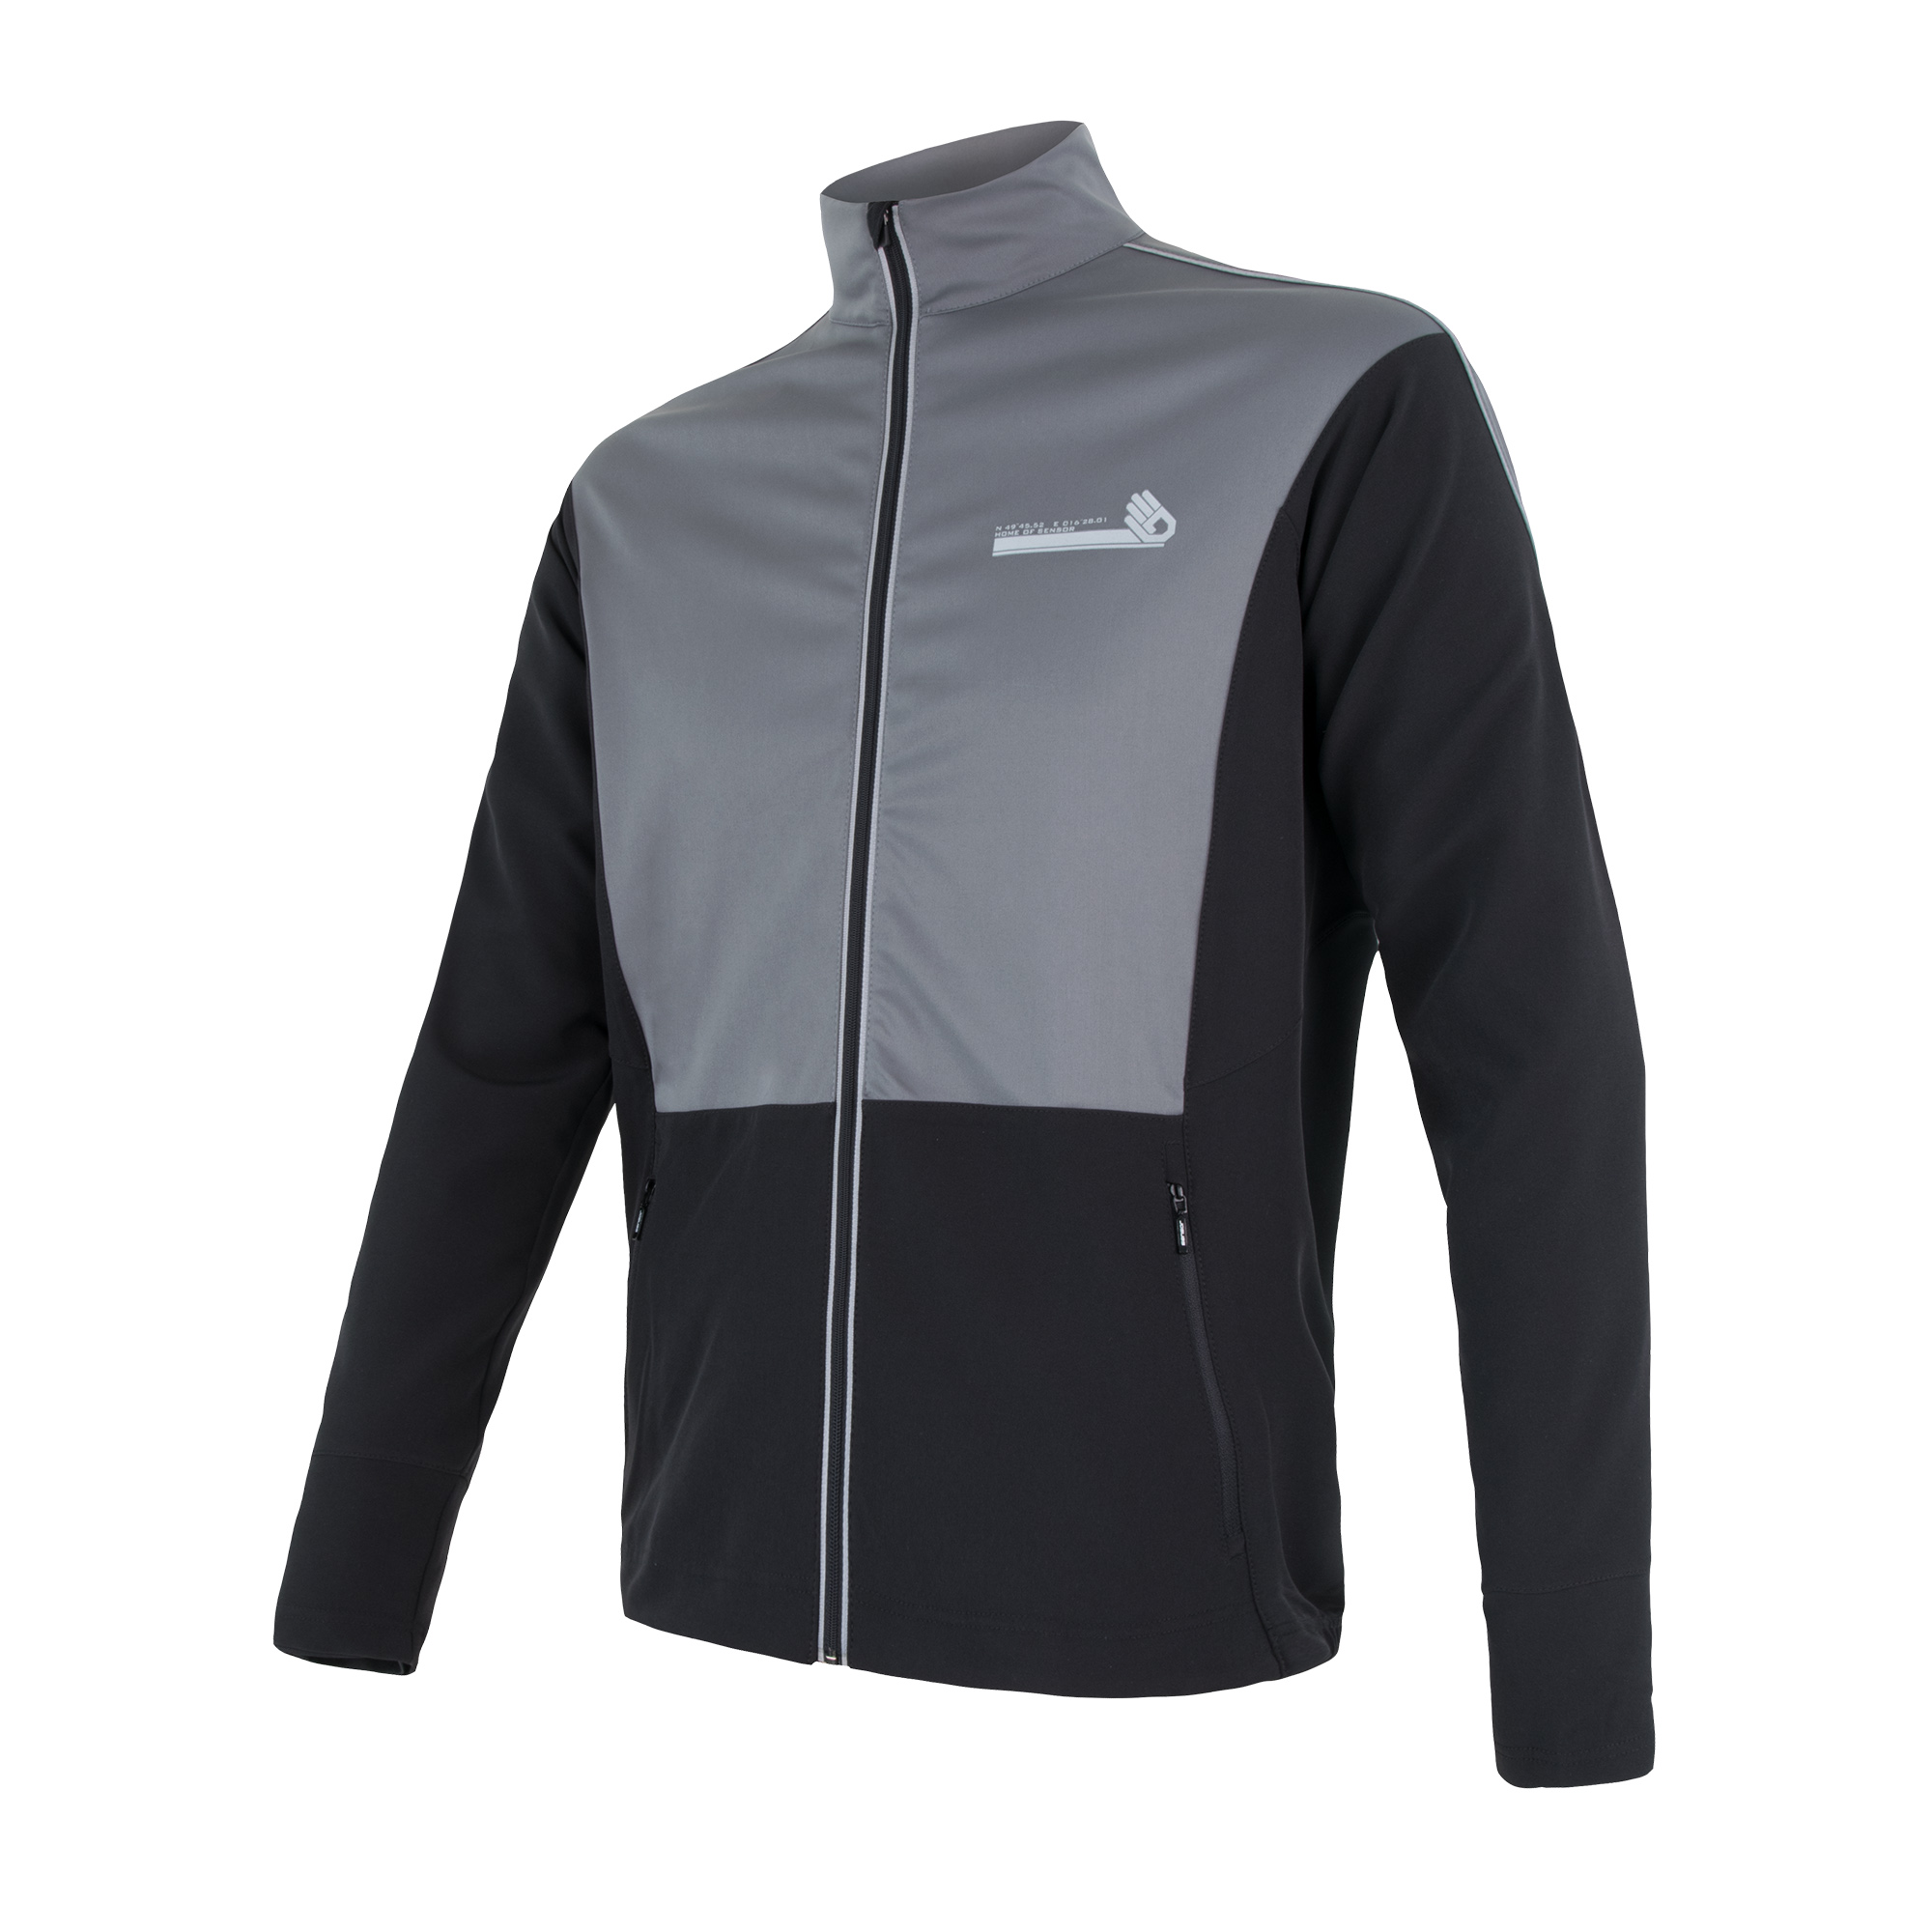 Sensor Cross - Vinter softshell - Sort | Jakker